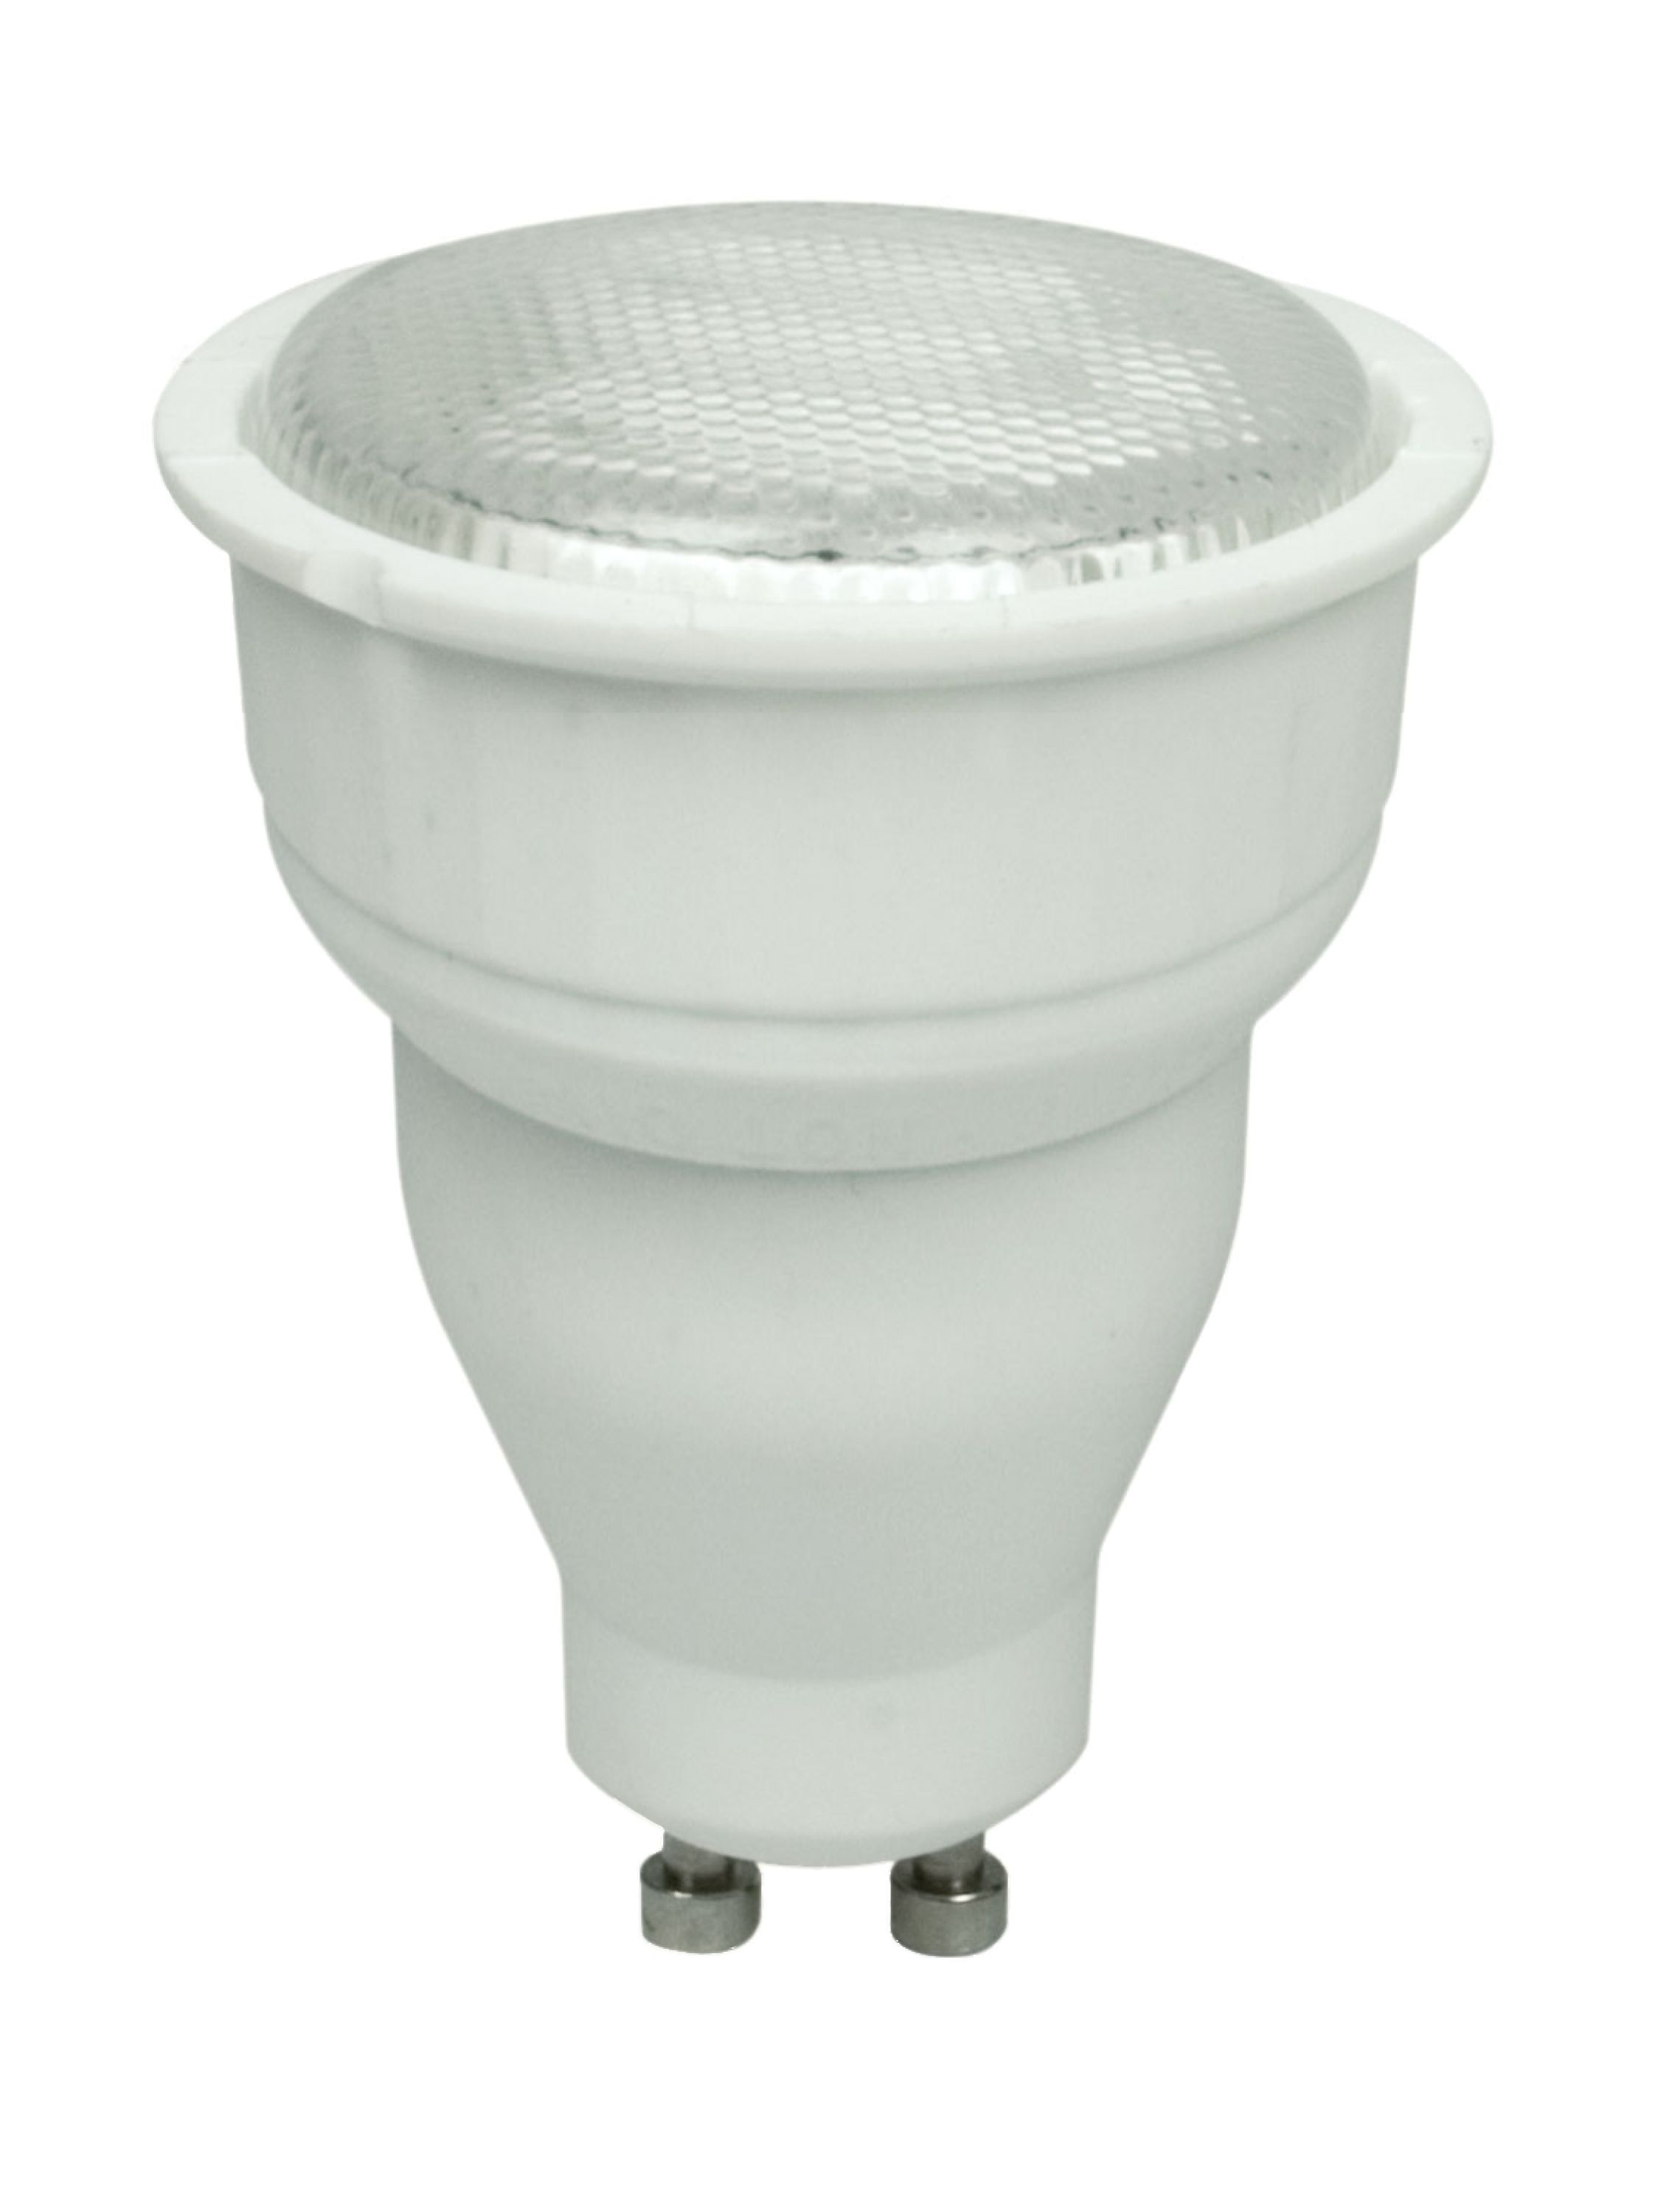 5.8w GU10 LED spot bulb (4000k, glass, dimmable, 420lm =55w)